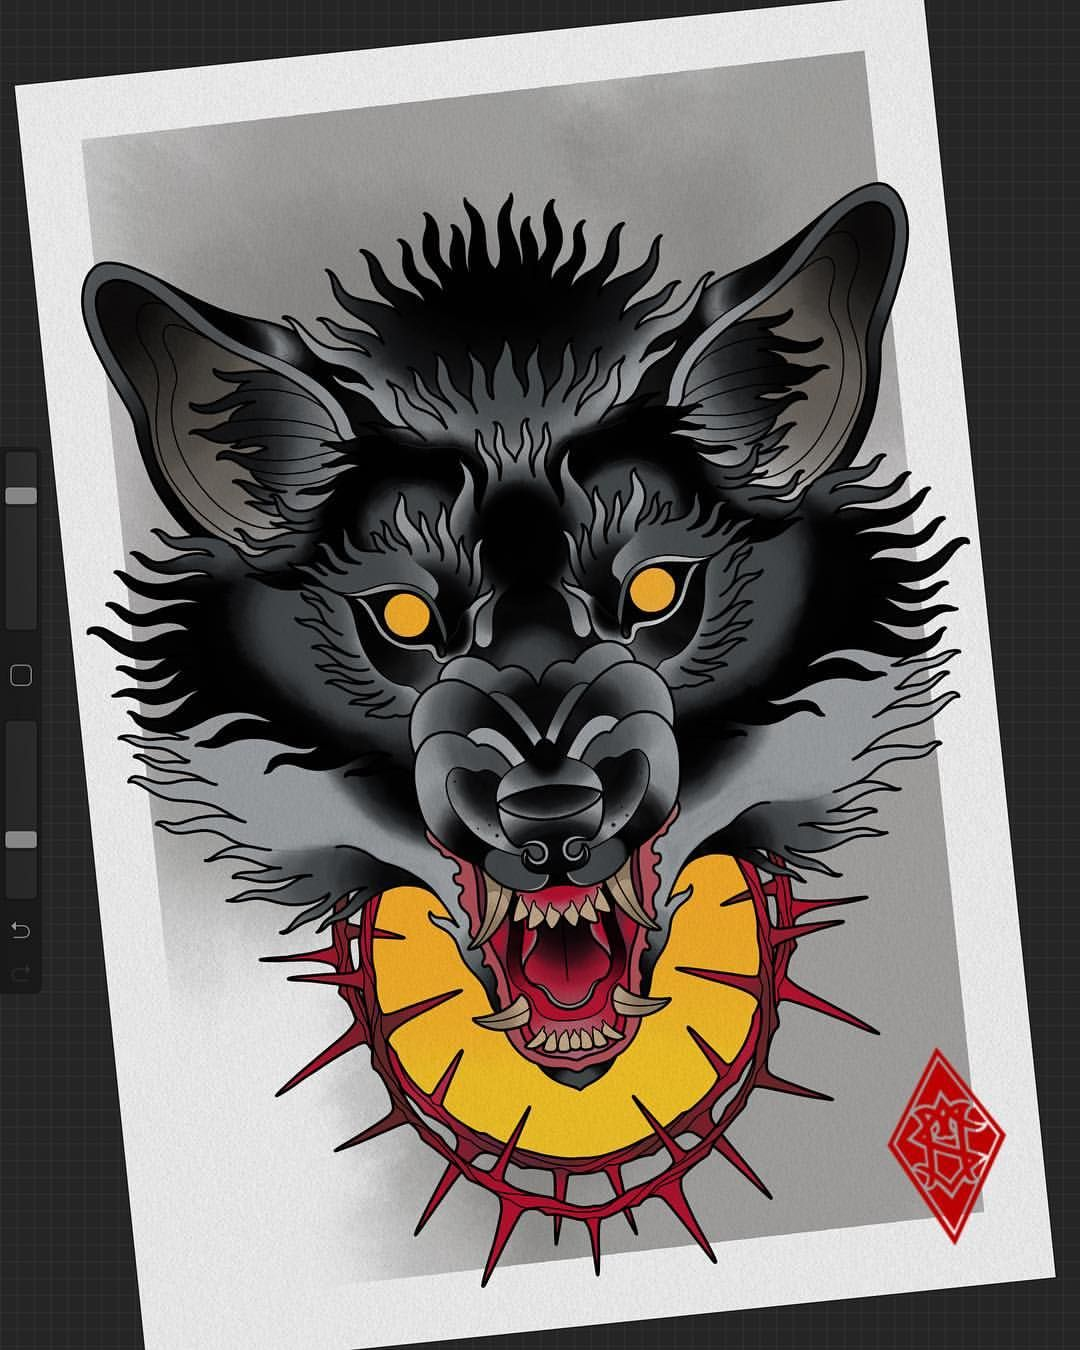 Kartinka Svobodna Neotraditional Newtrad Tattoo Flash Wolf Wolftattoo Sketch Painting Drawing Ipadprotat Wolf Tattoos Wolf Sketch Wolf Tattoo Design